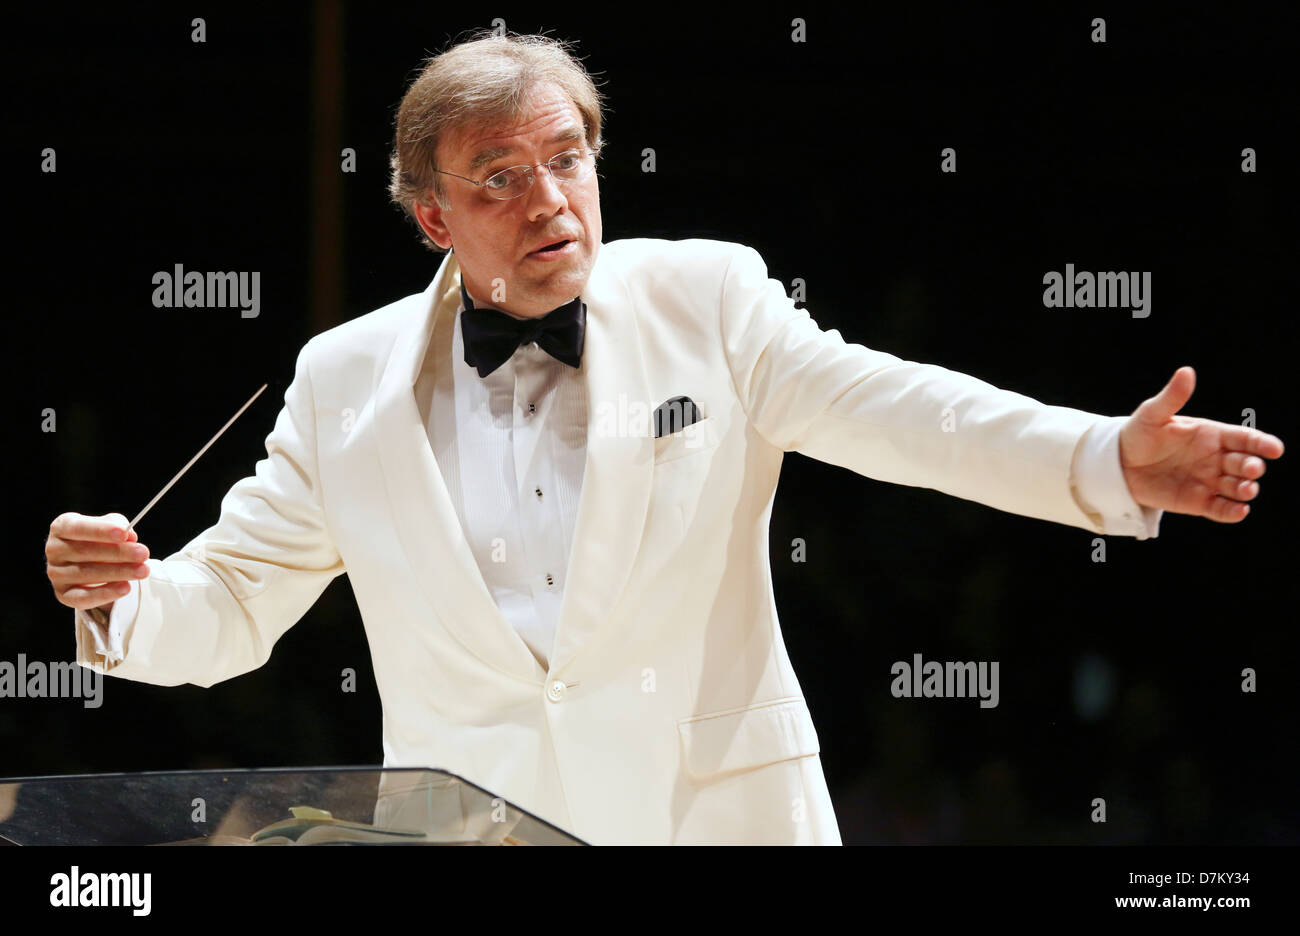 Christopher Wilkins conducts the Boston Landmarks Orchestra in Sanders Theater, Cambridge, Massachusetts - Stock Image